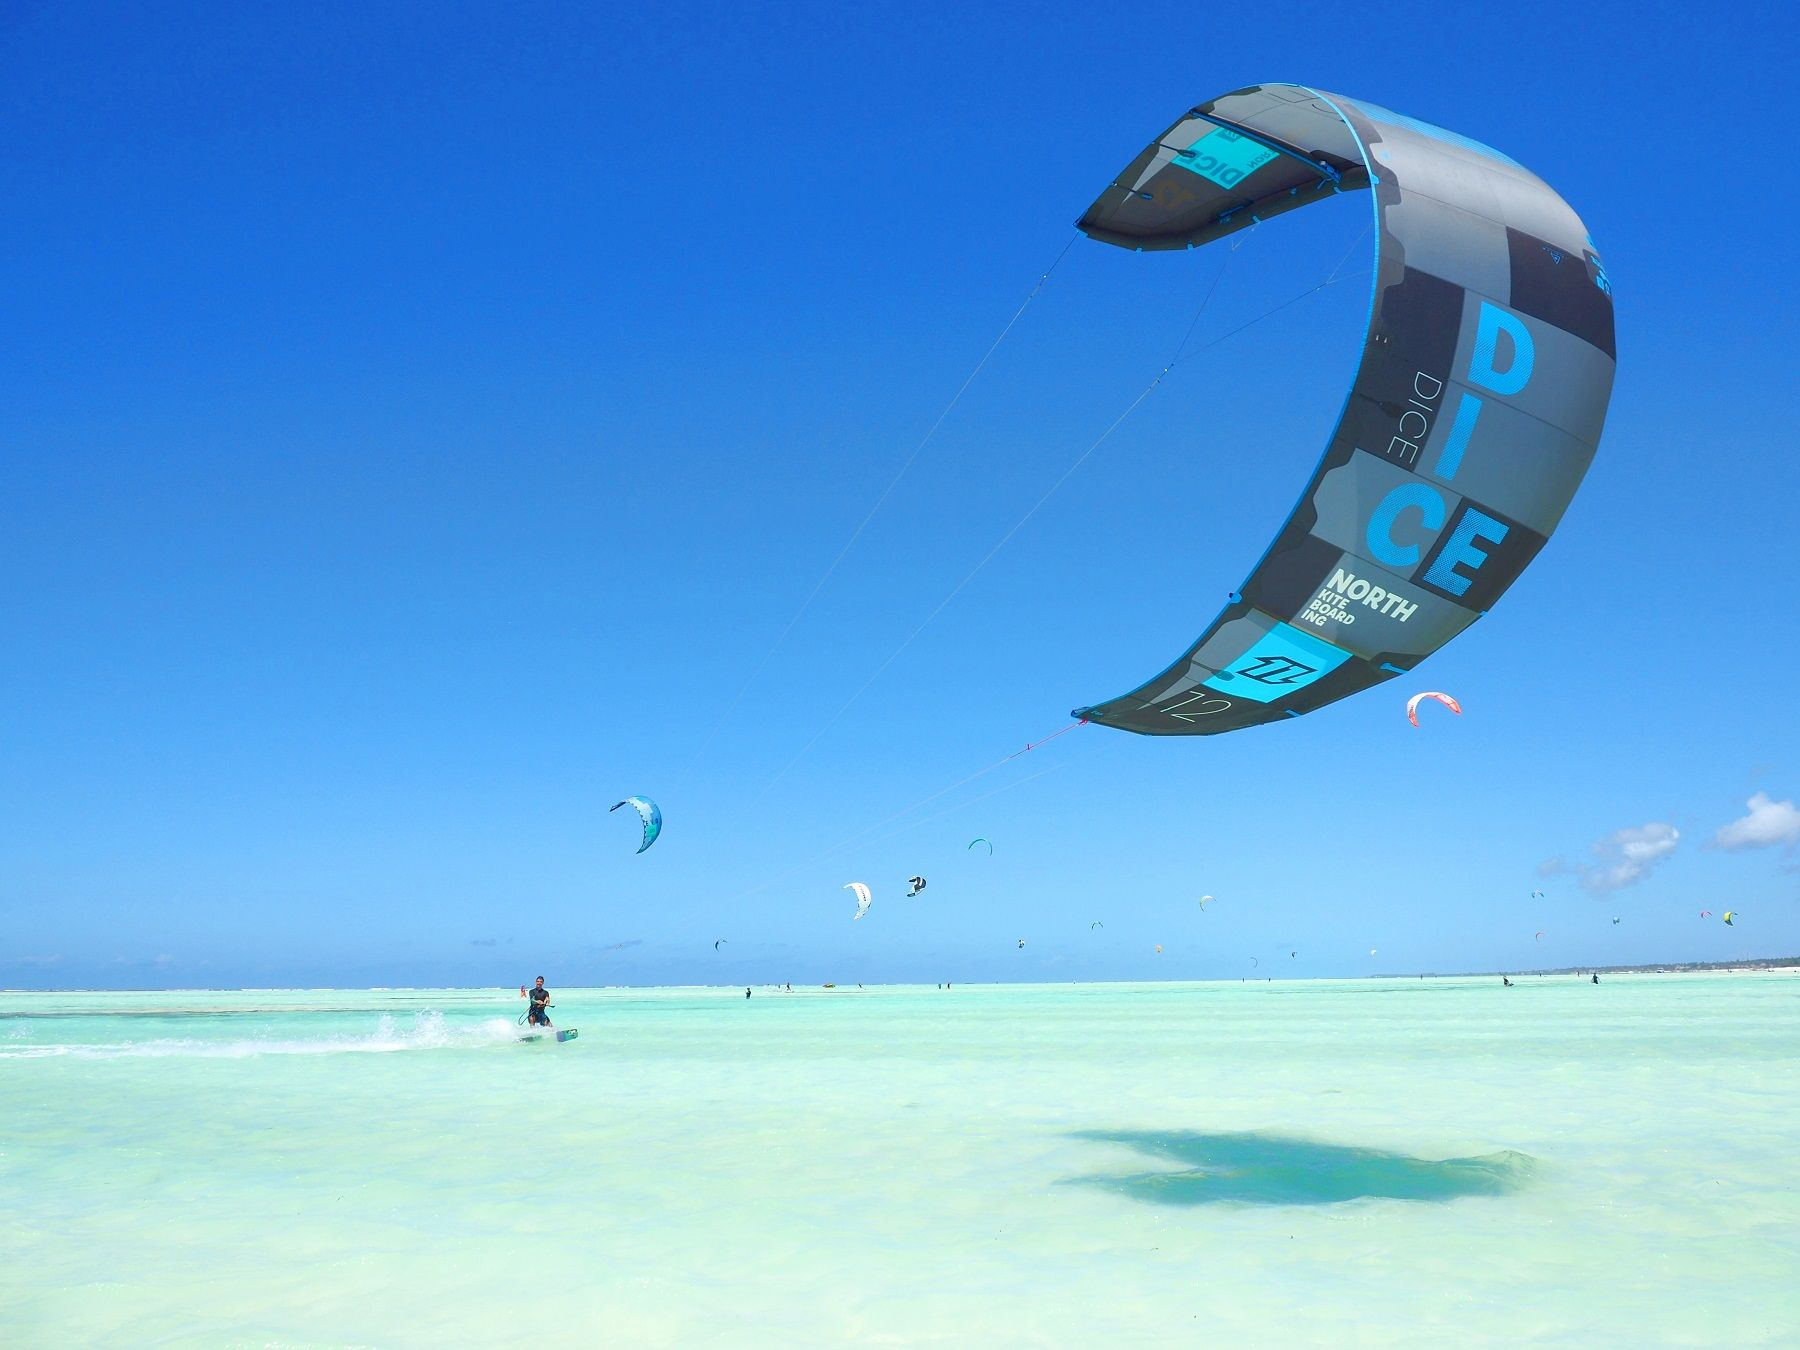 Kite centre zanzibar, review north dice 2018